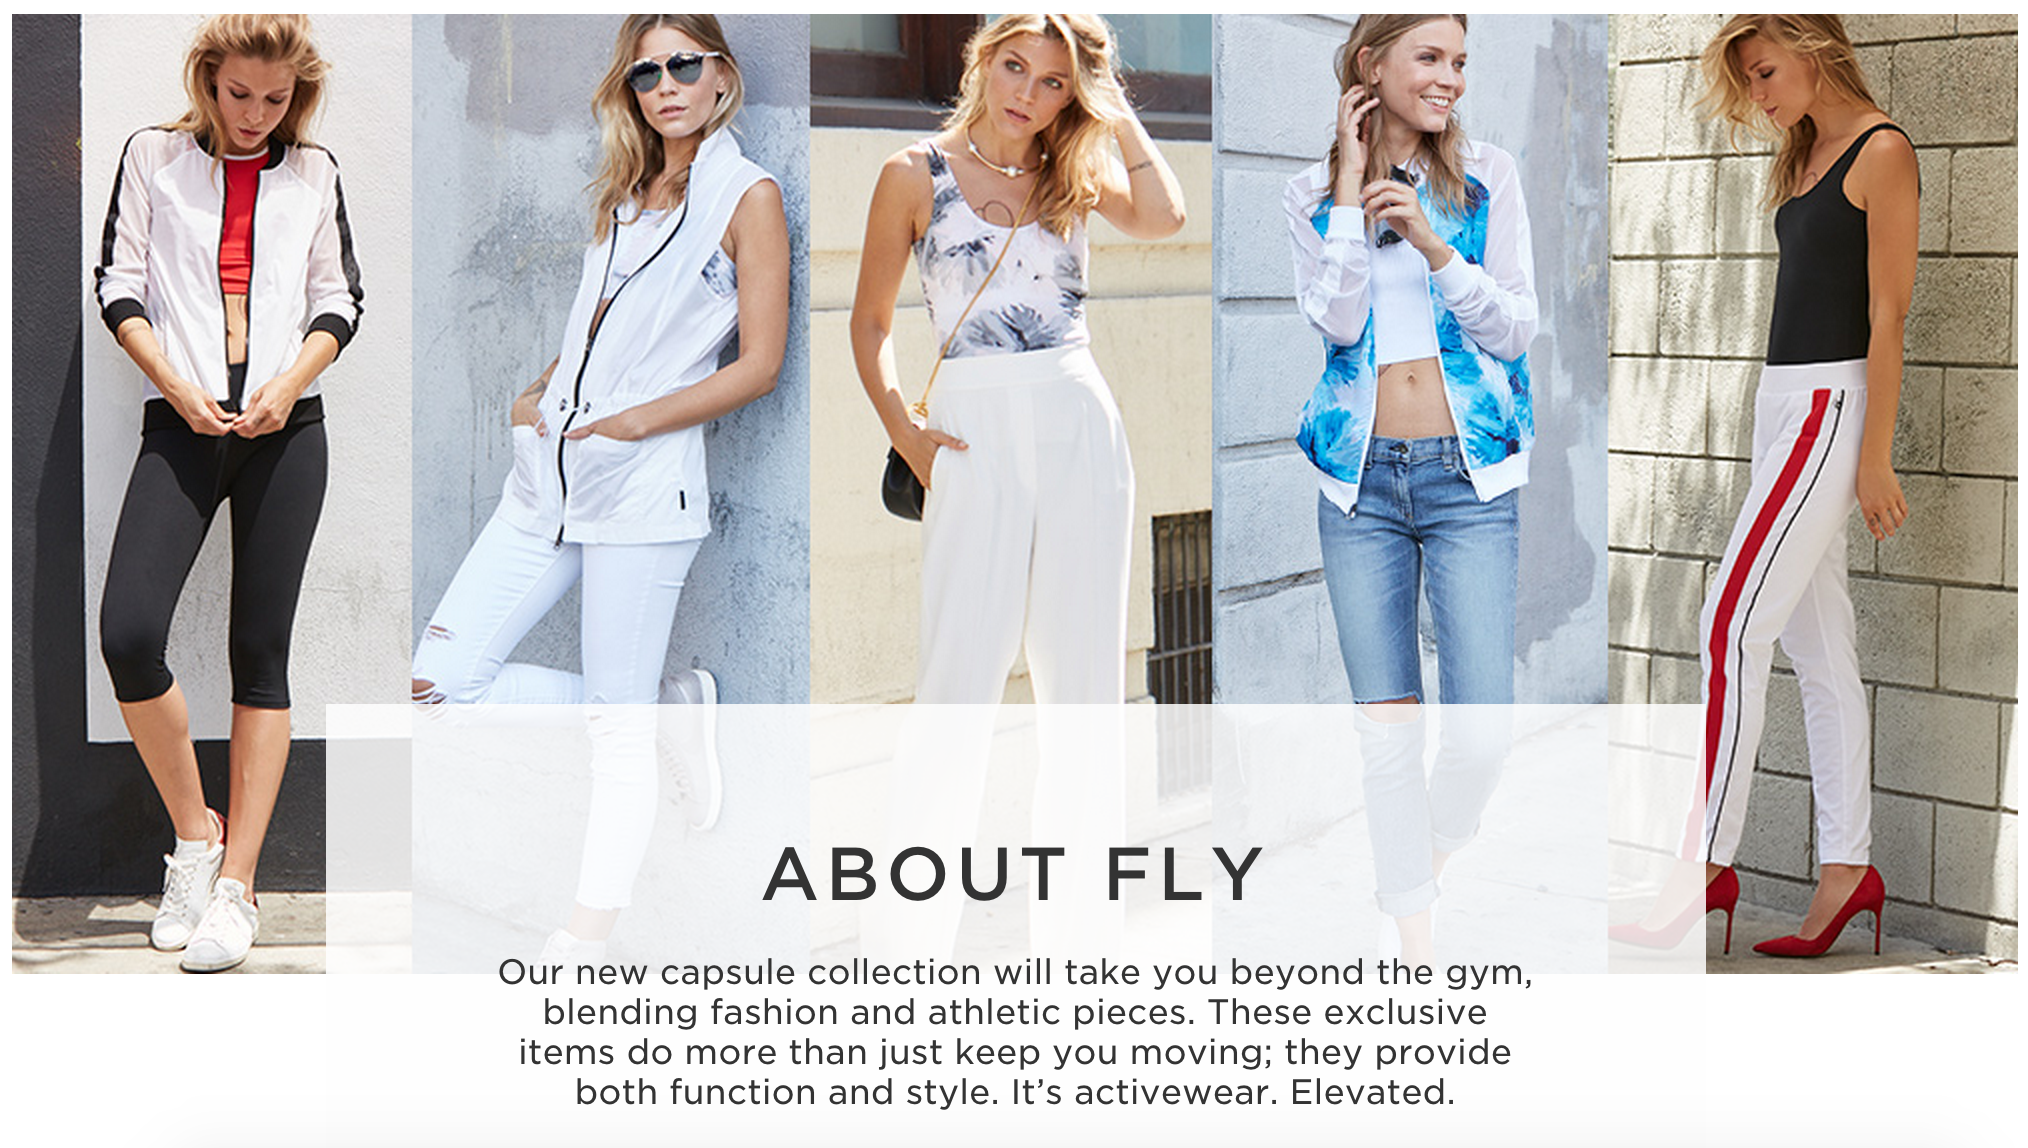 New FLY Capsule Collection from Fabletics + 50% Off Coupon About Fly